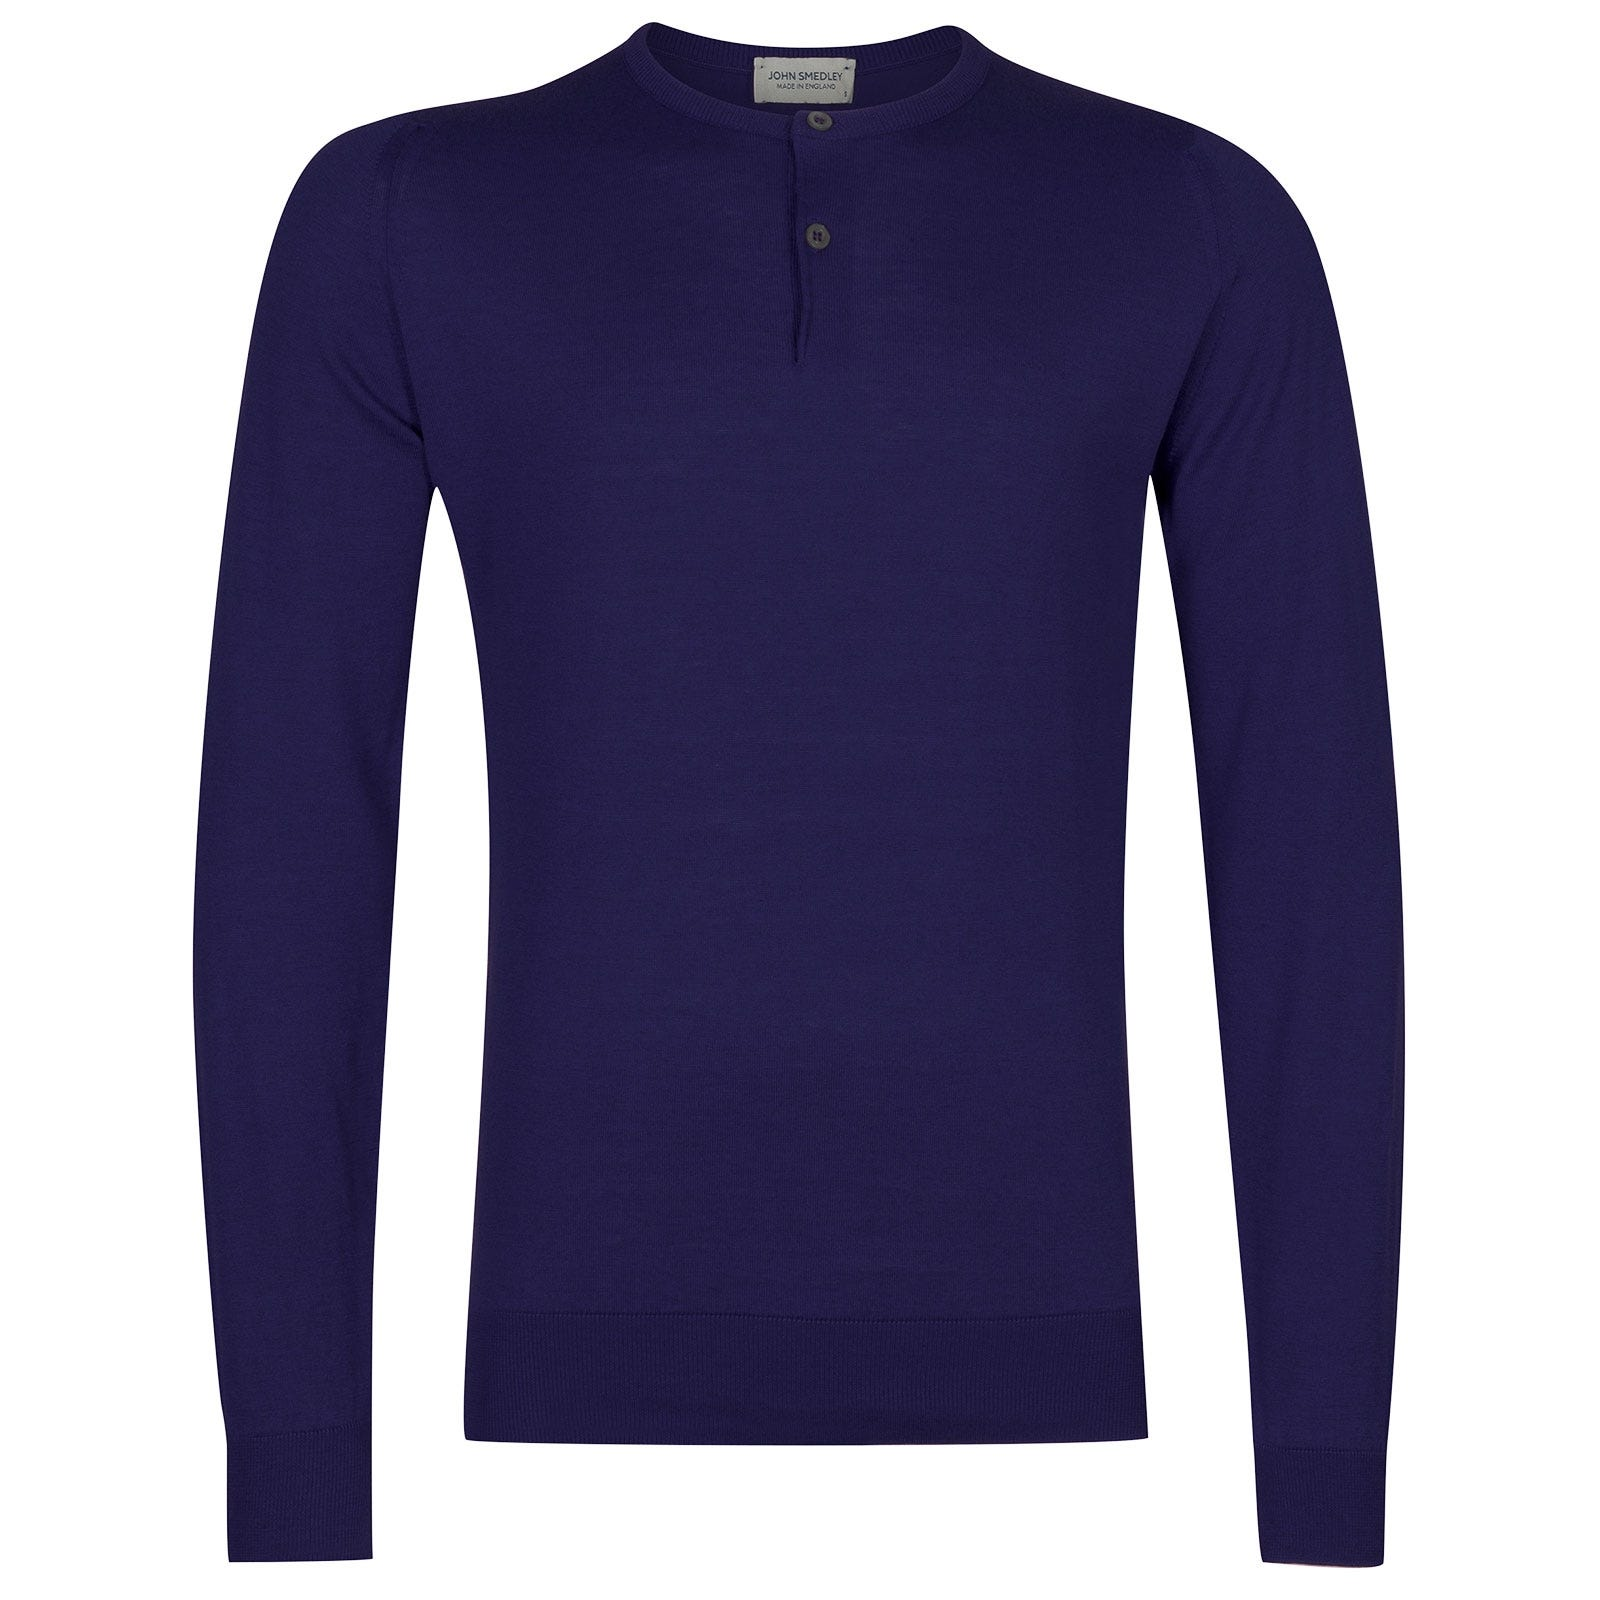 John Smedley Wembury Sea Island Cotton Pullover in Serge Blue-M